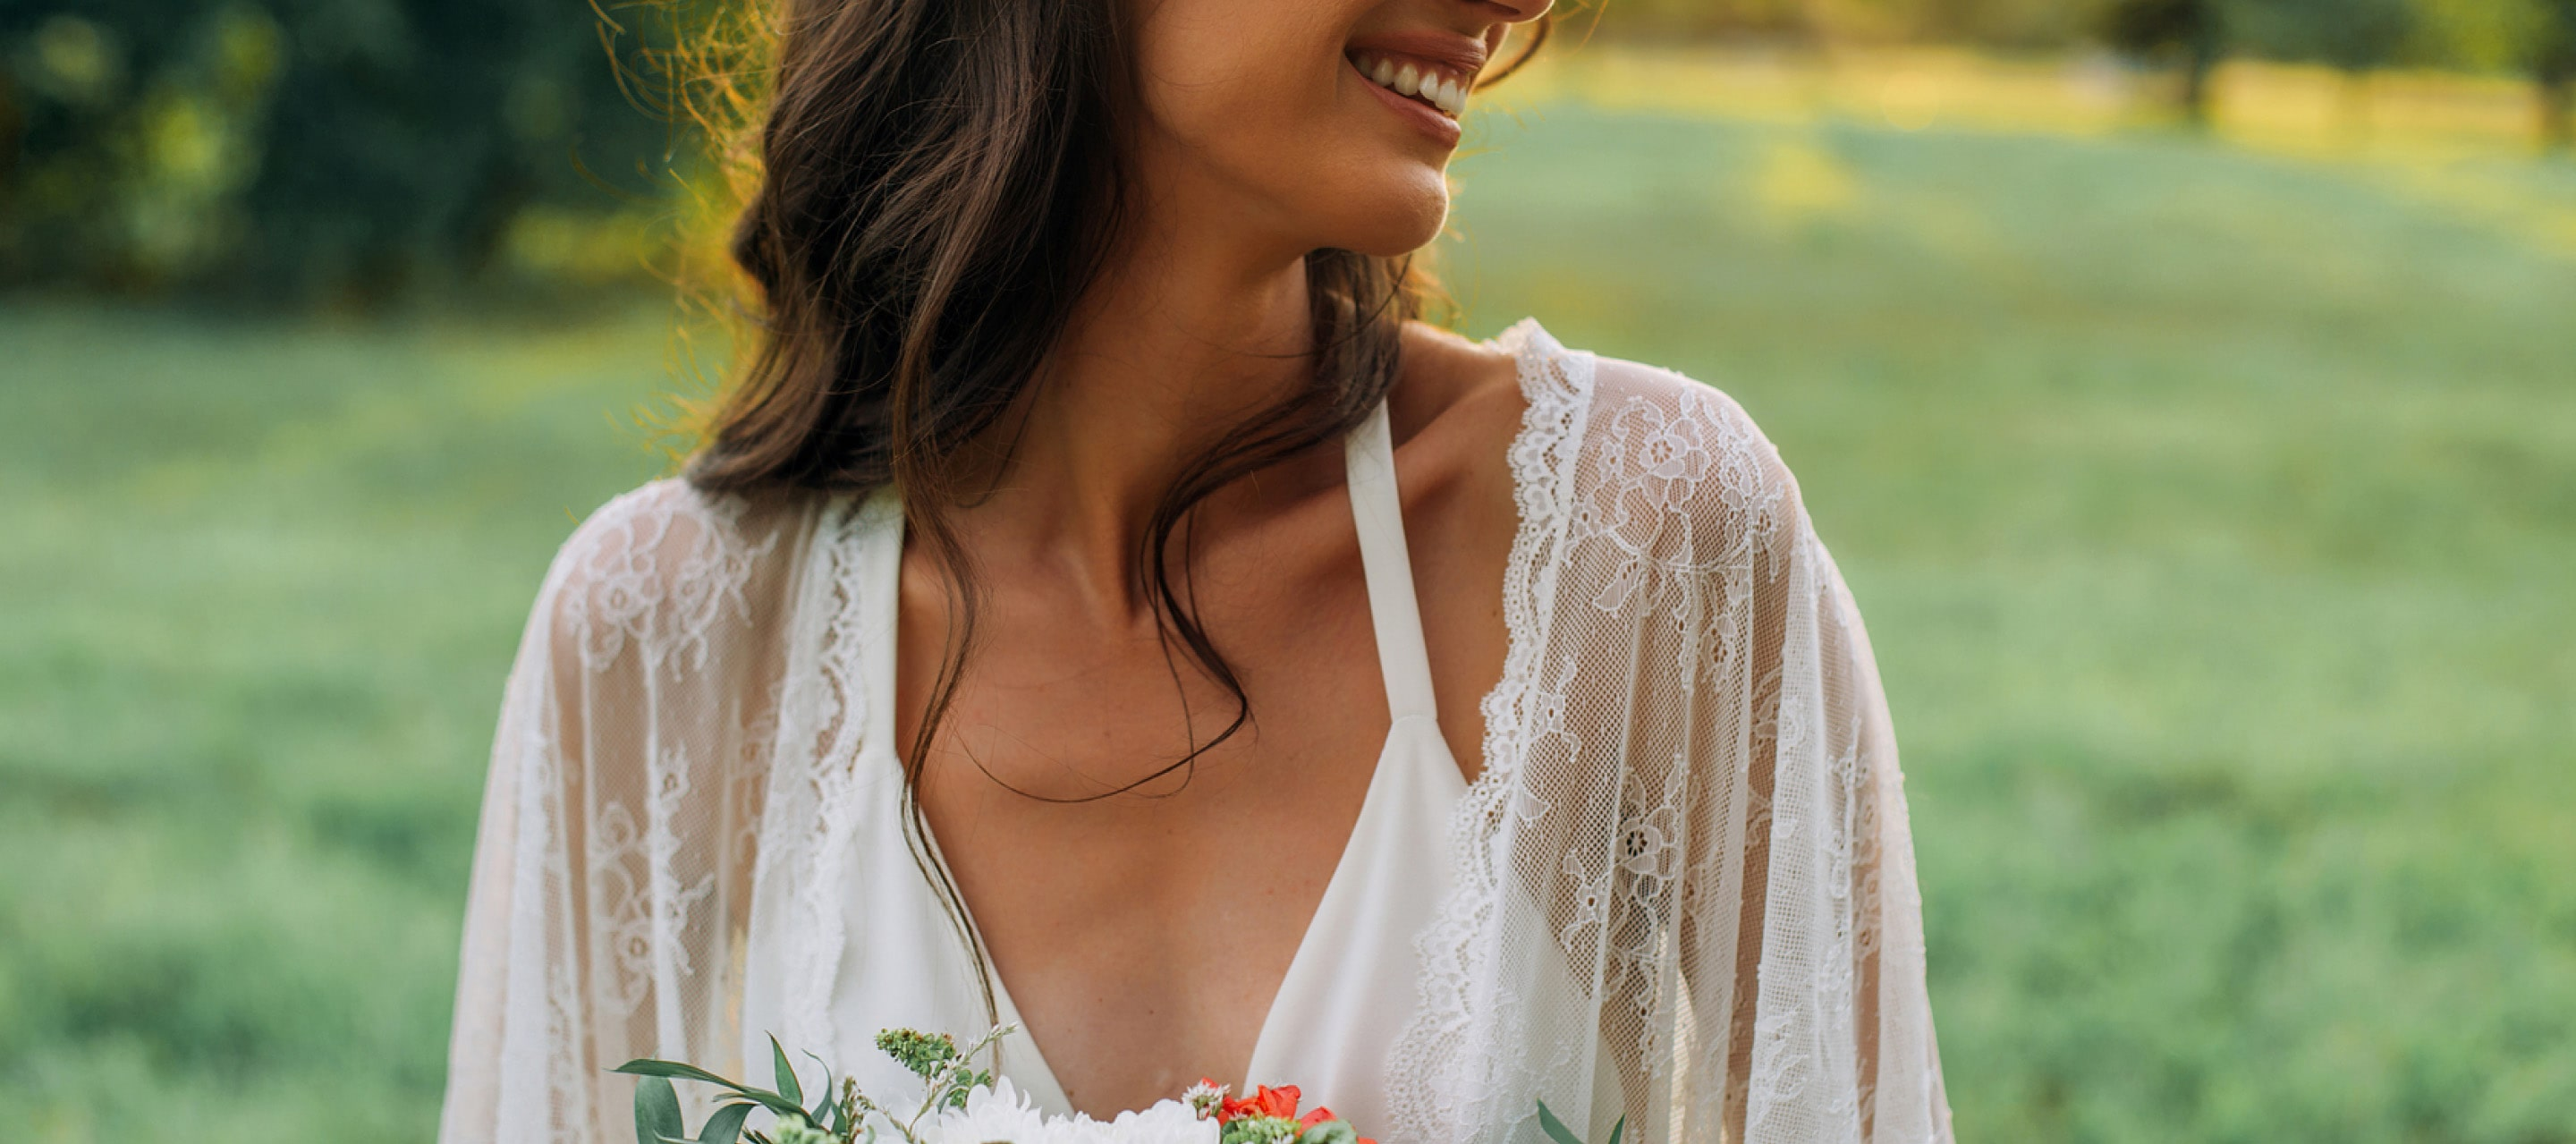 Affordable used wedding dresses from Borrowing Magnolia